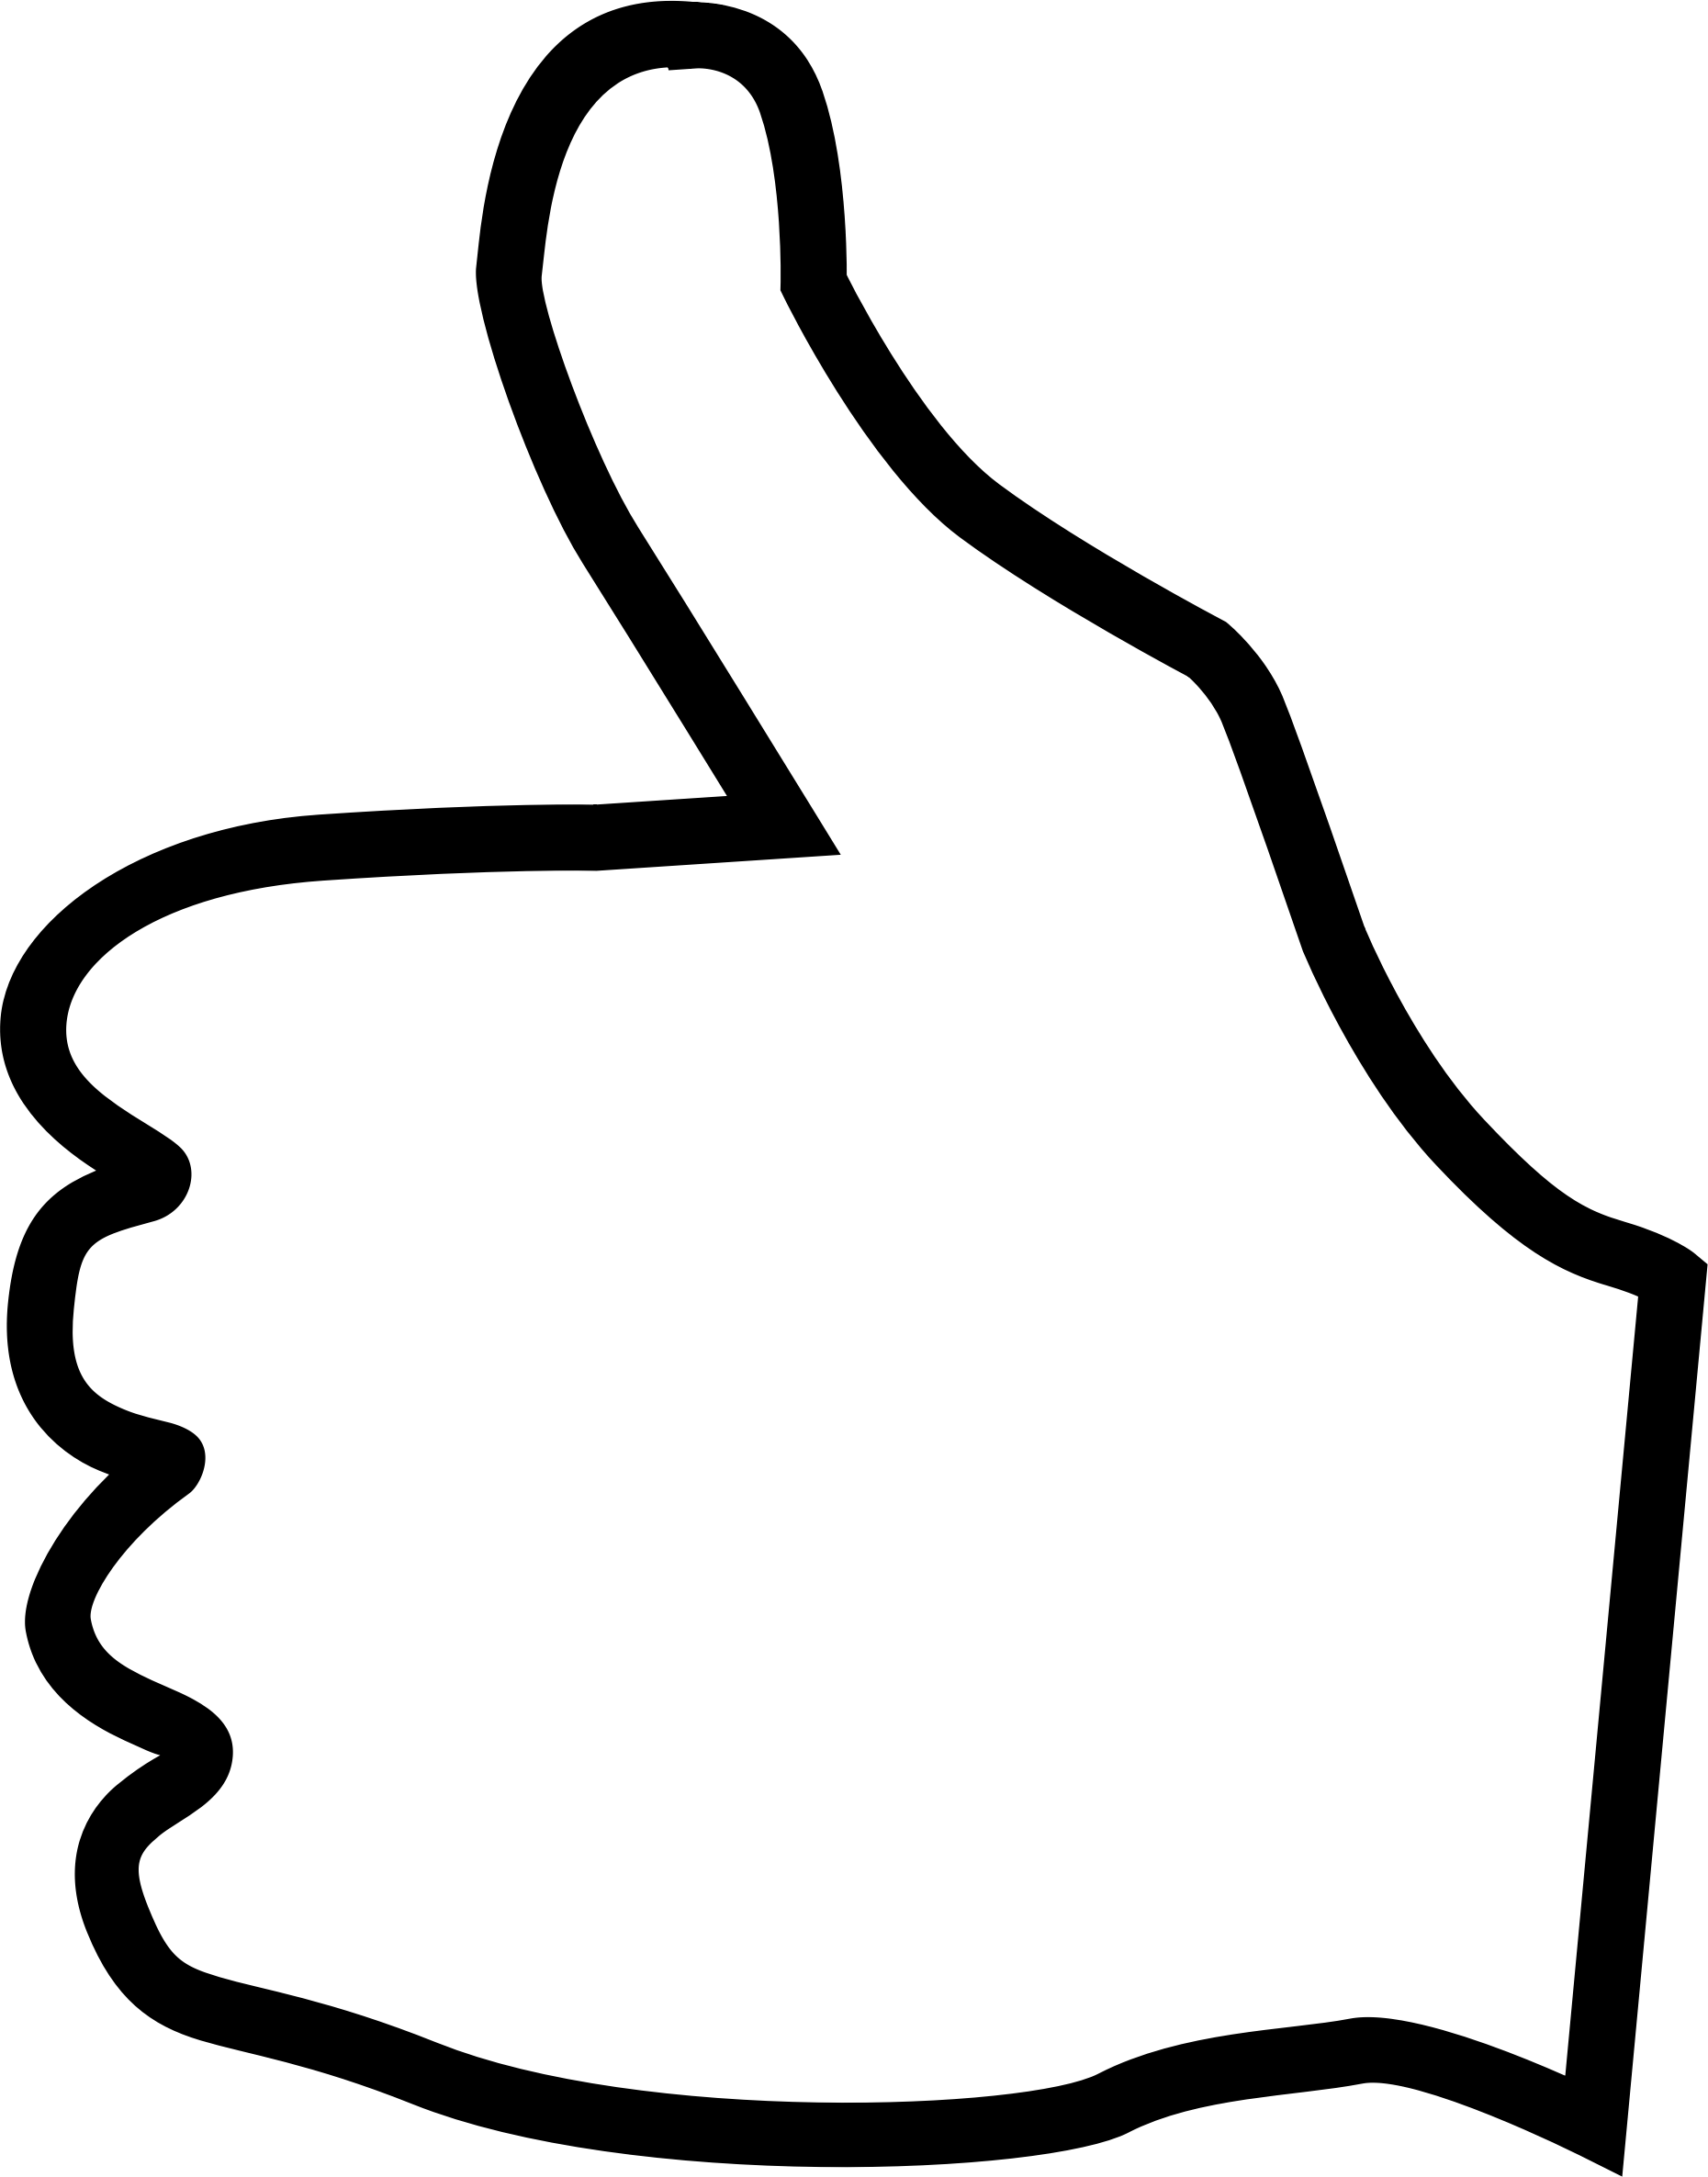 Free Thumbs Up Clipart 2 Download Free Clip Art Free